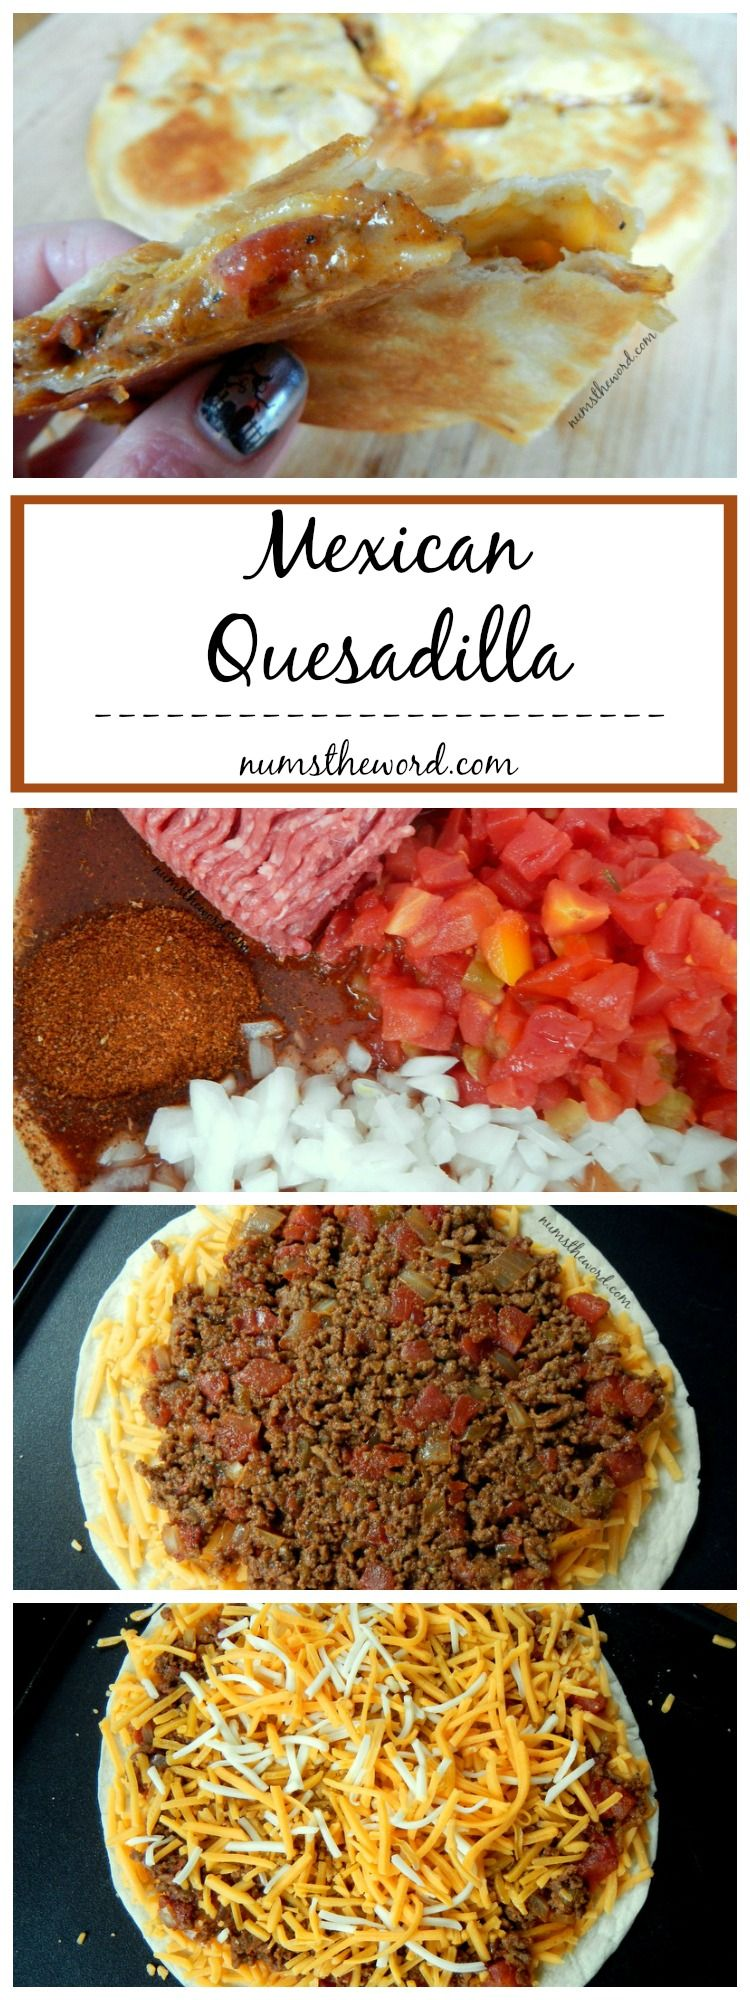 A tasty twist on the classic quesadilla, this Mexican Quesadilla is ...